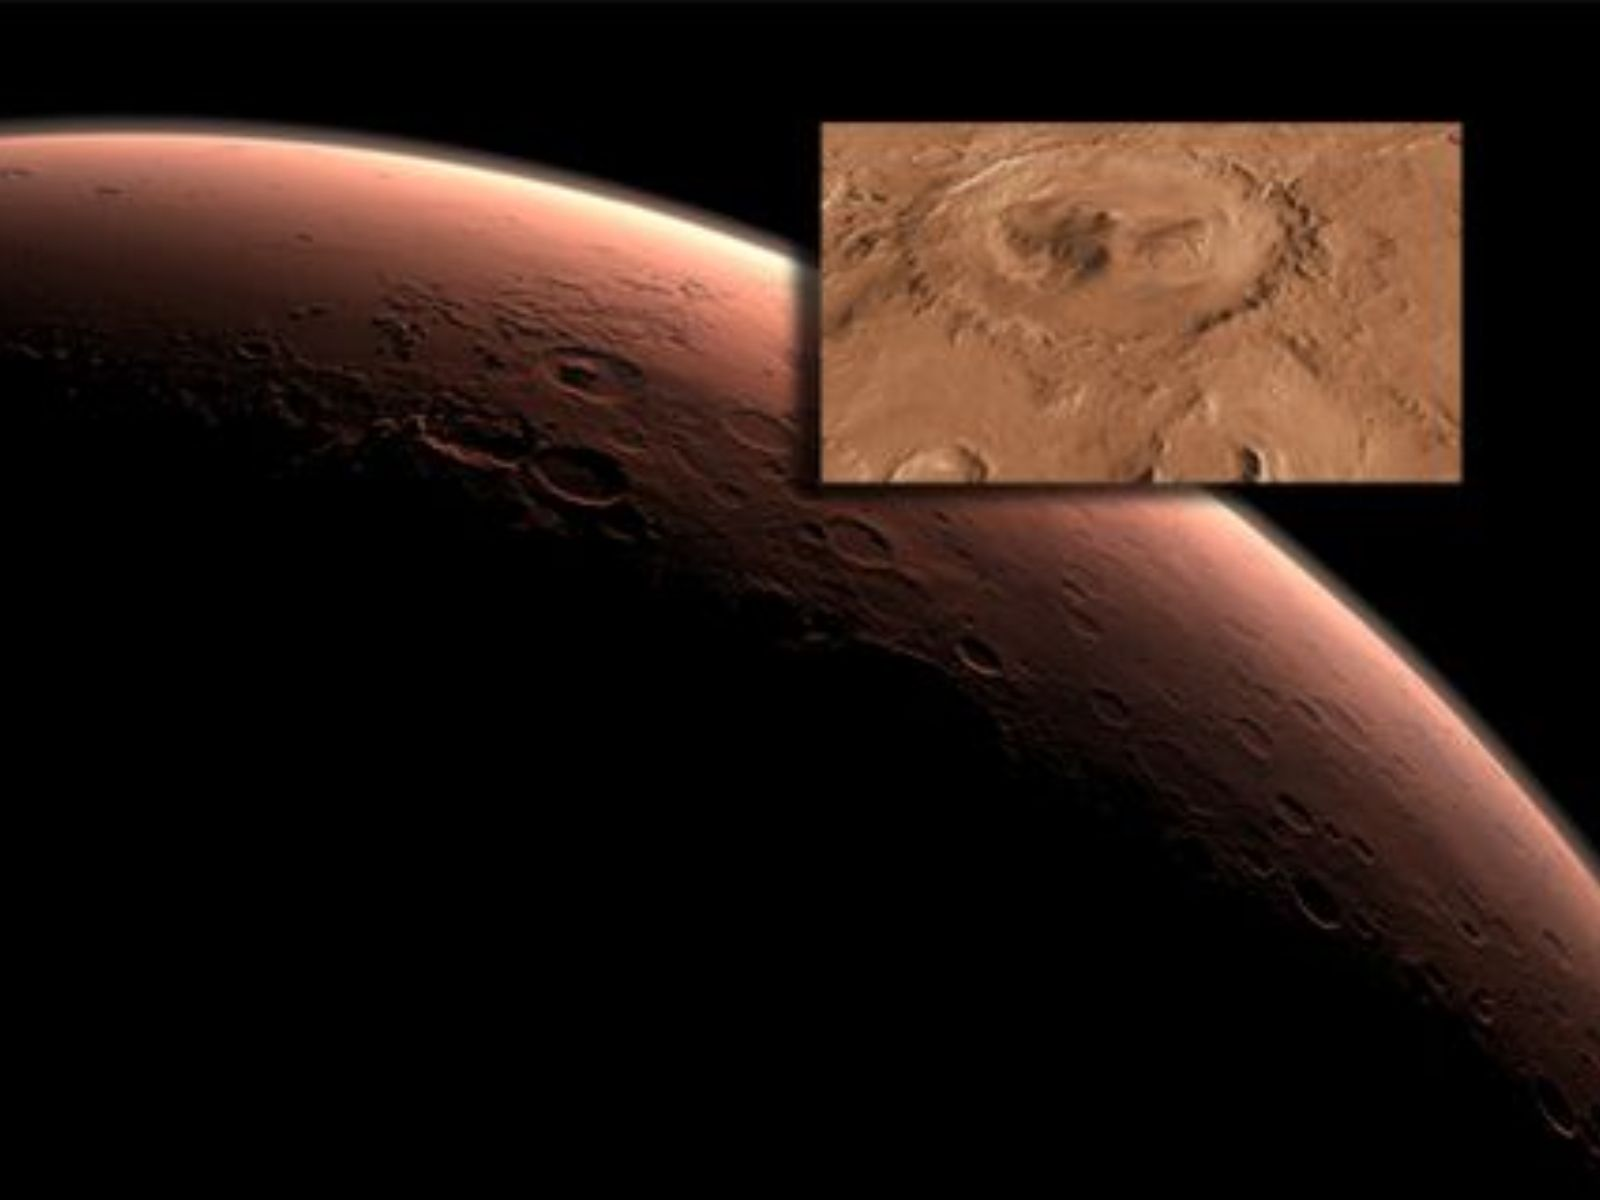 NASA's Next Mars Rover to Land at Gale Crater Space Wallpaper